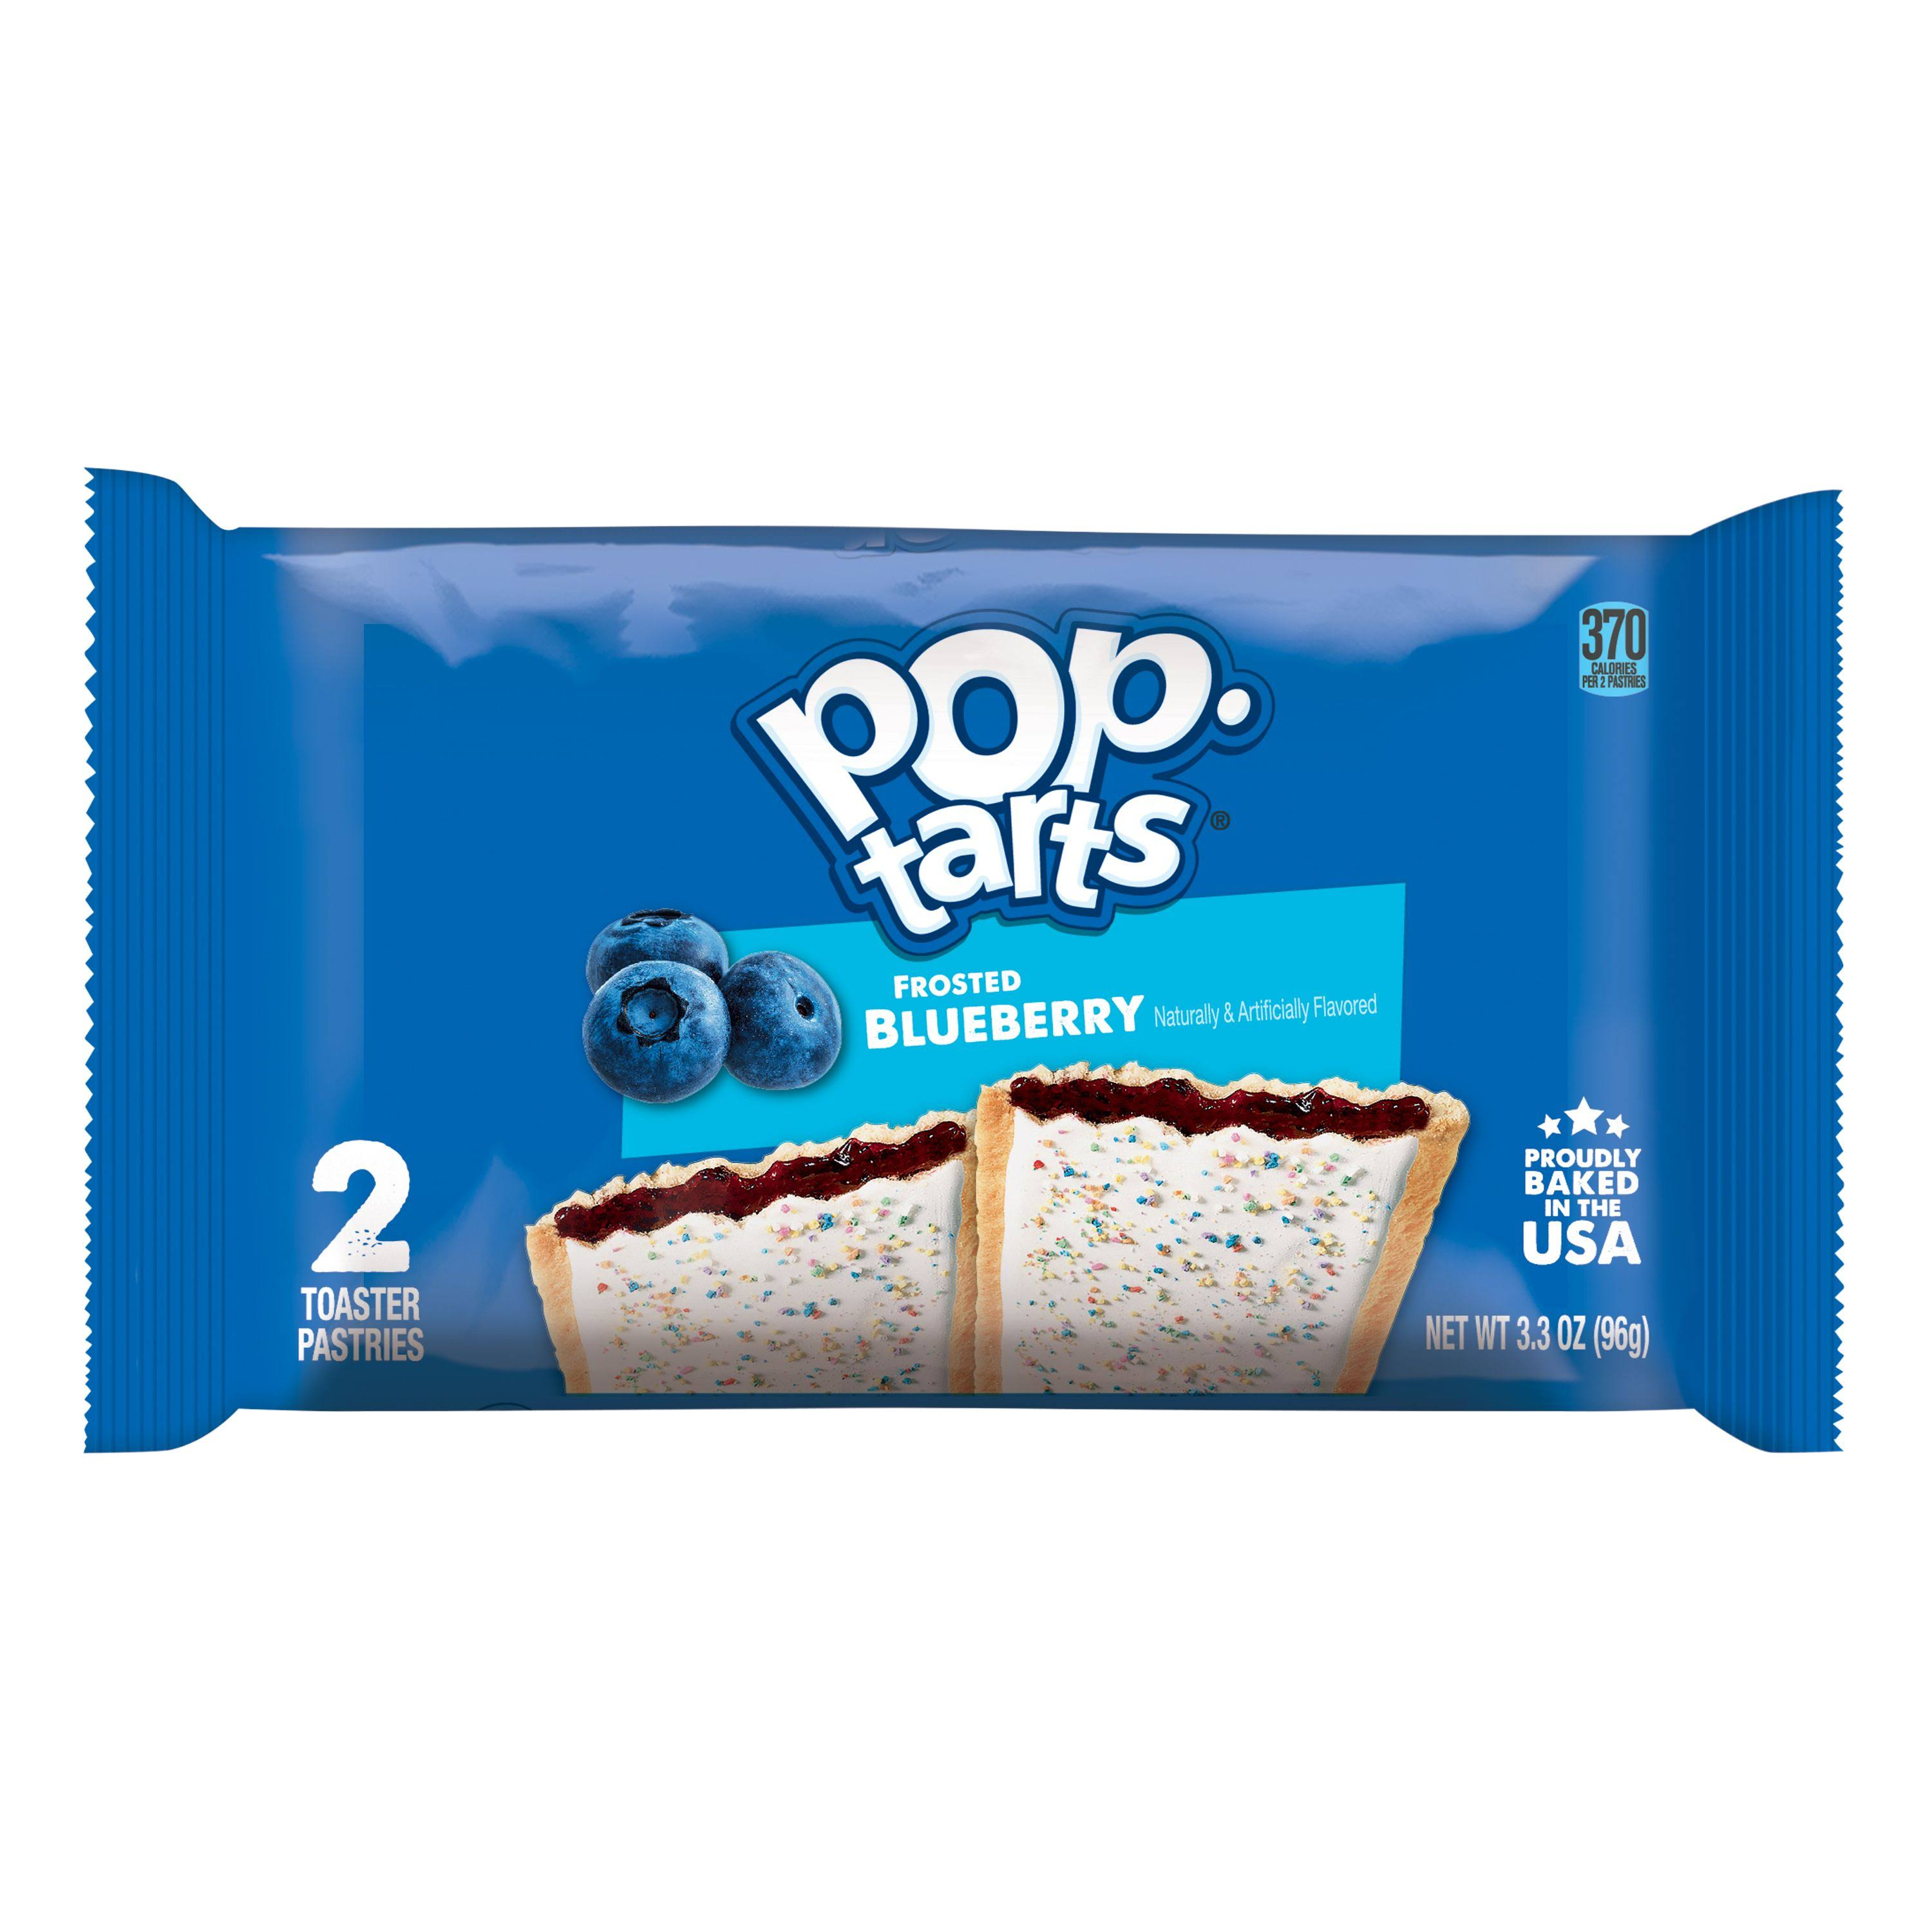 Kellogg's Pop Tarts - Frosted Blueberry, 104g